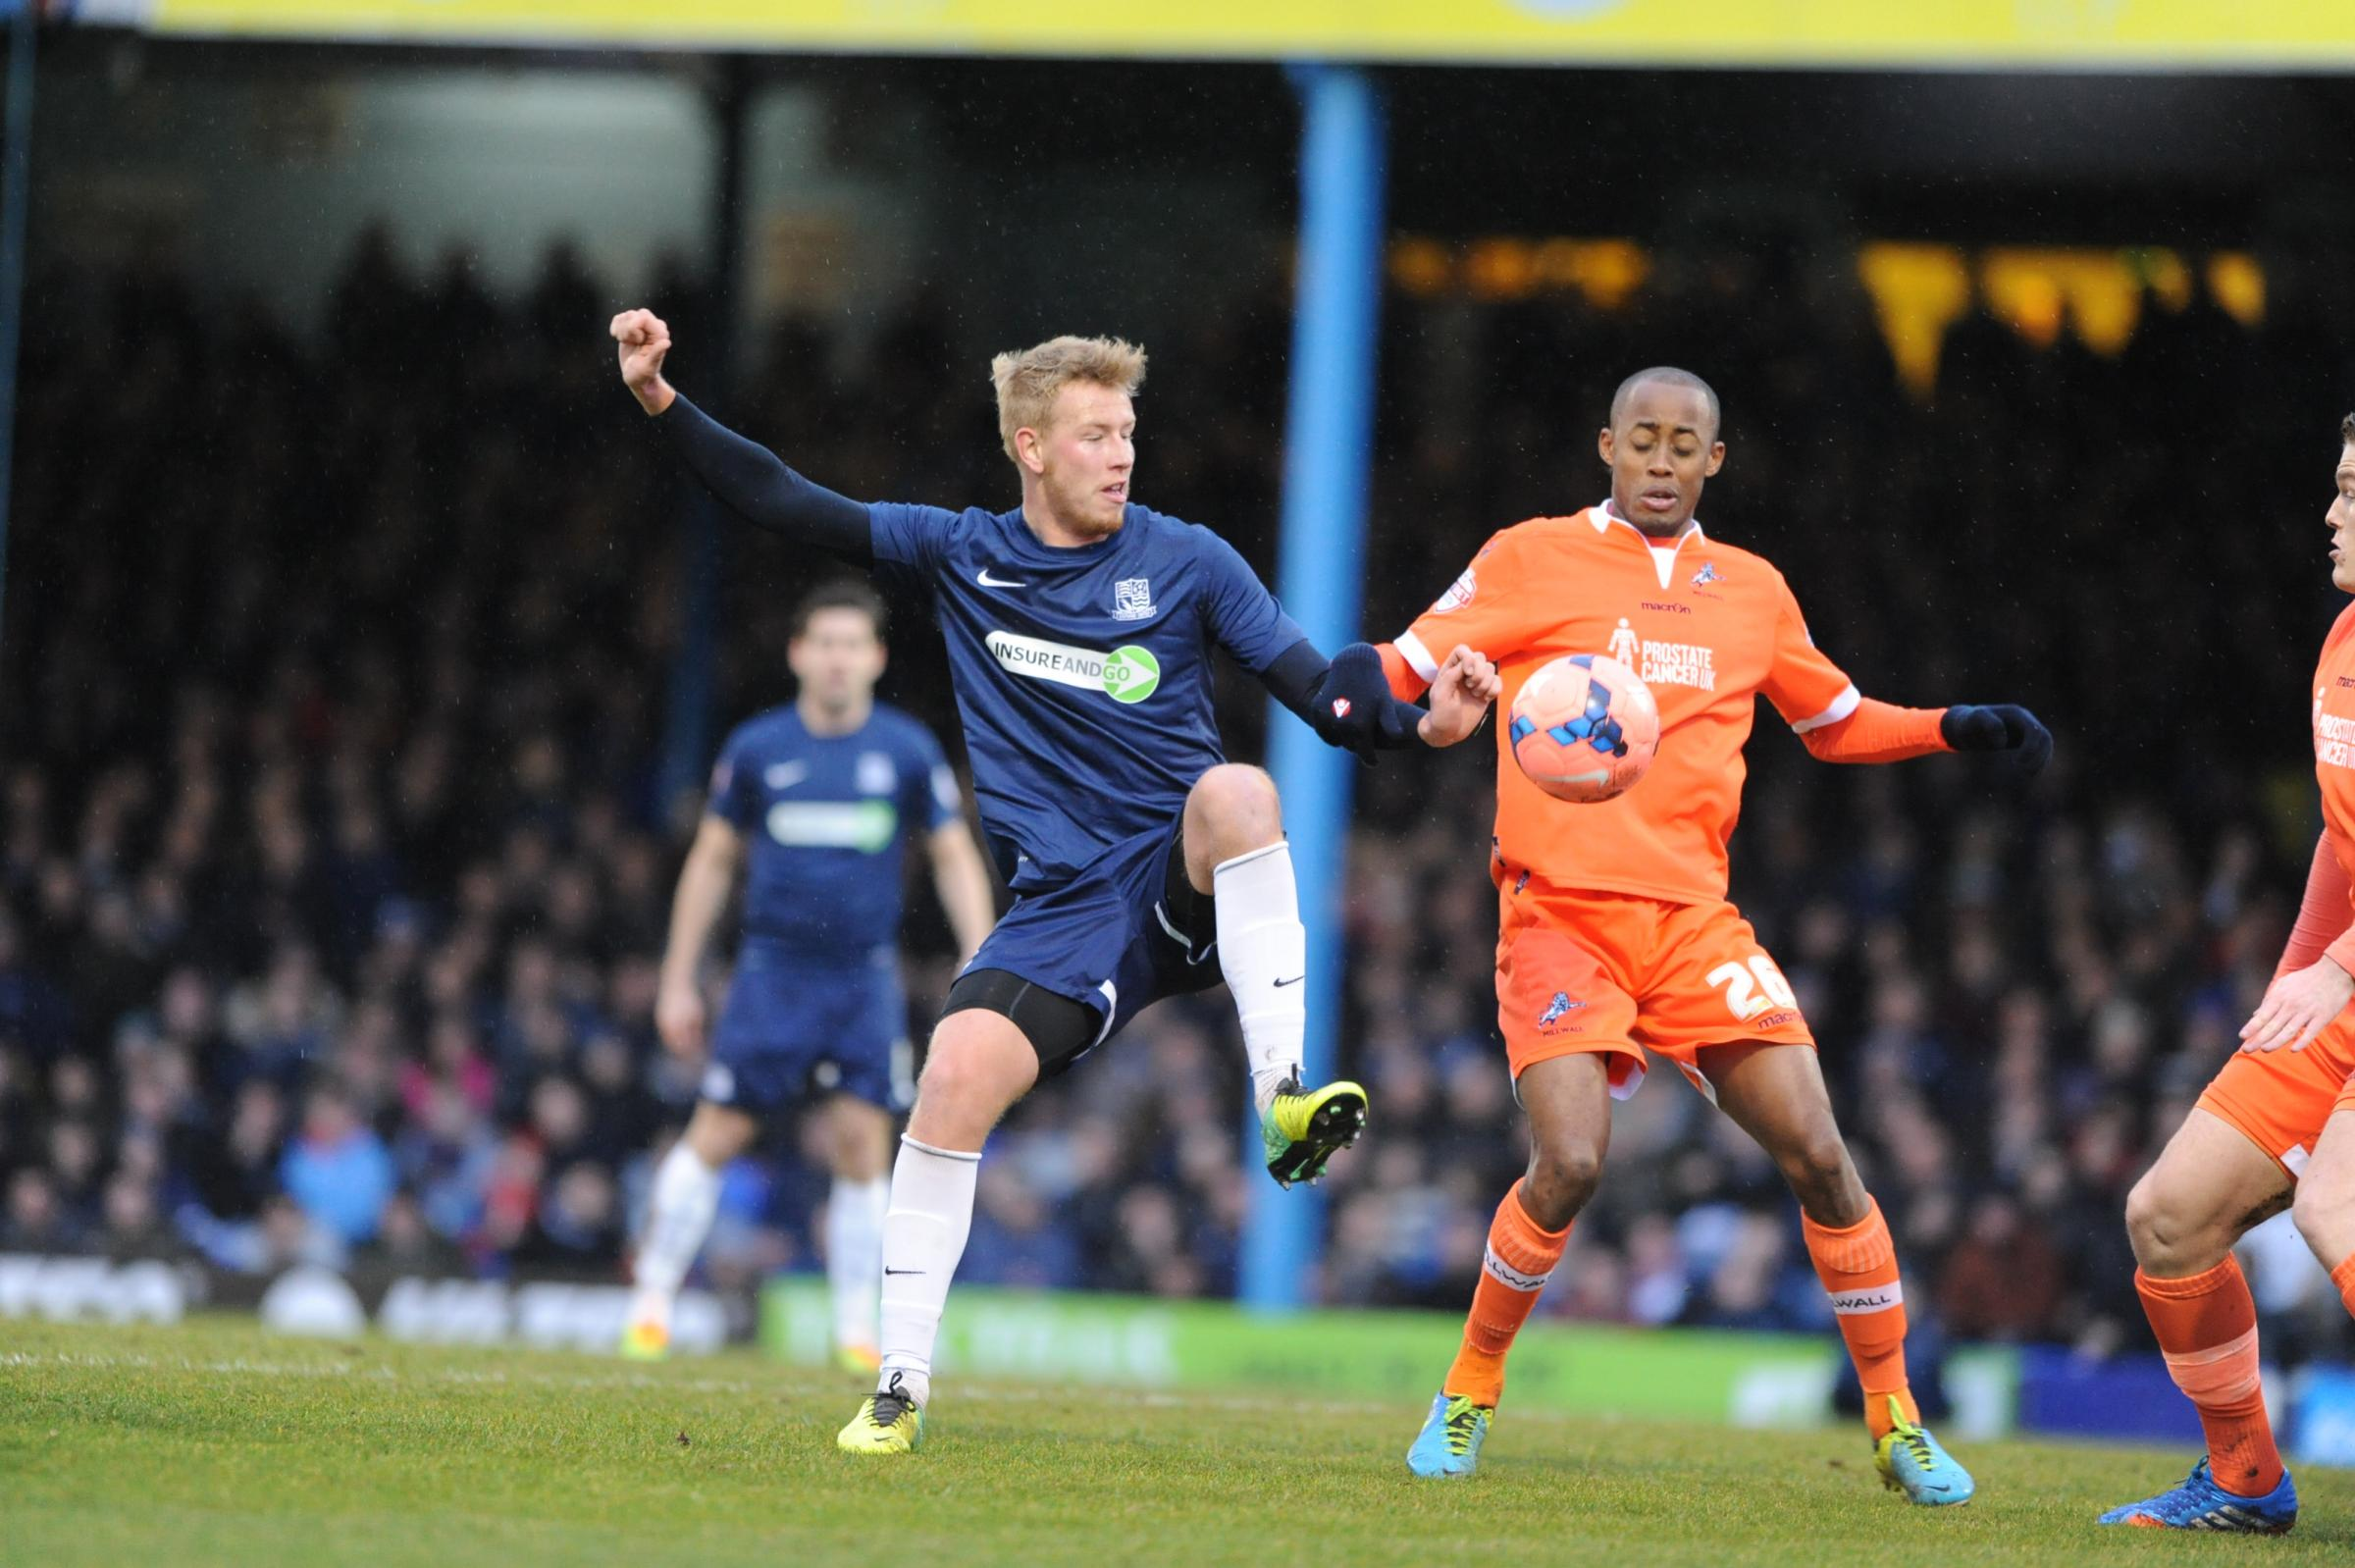 Adam Thompson - pleased to have joined Southend United on a permanent basis